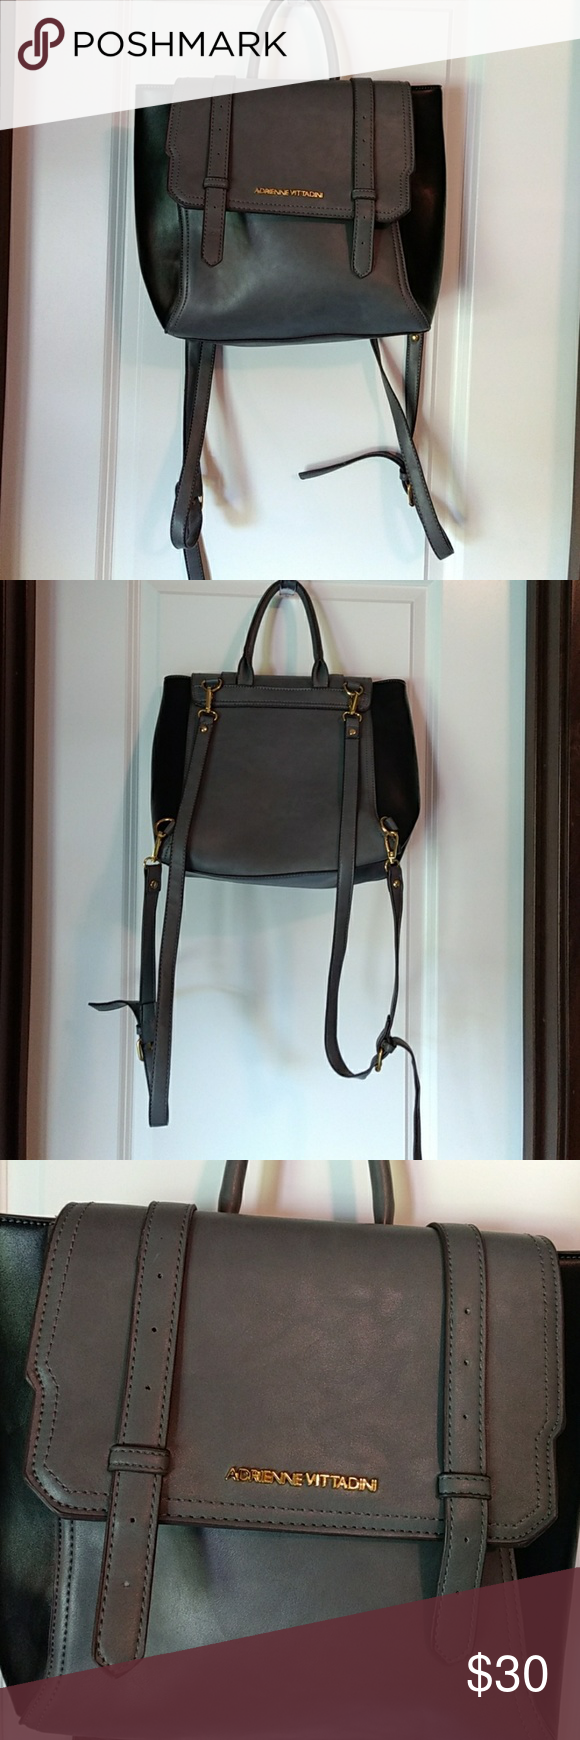 Adrienne vittadini backpack Grey and black backpack that can be ...